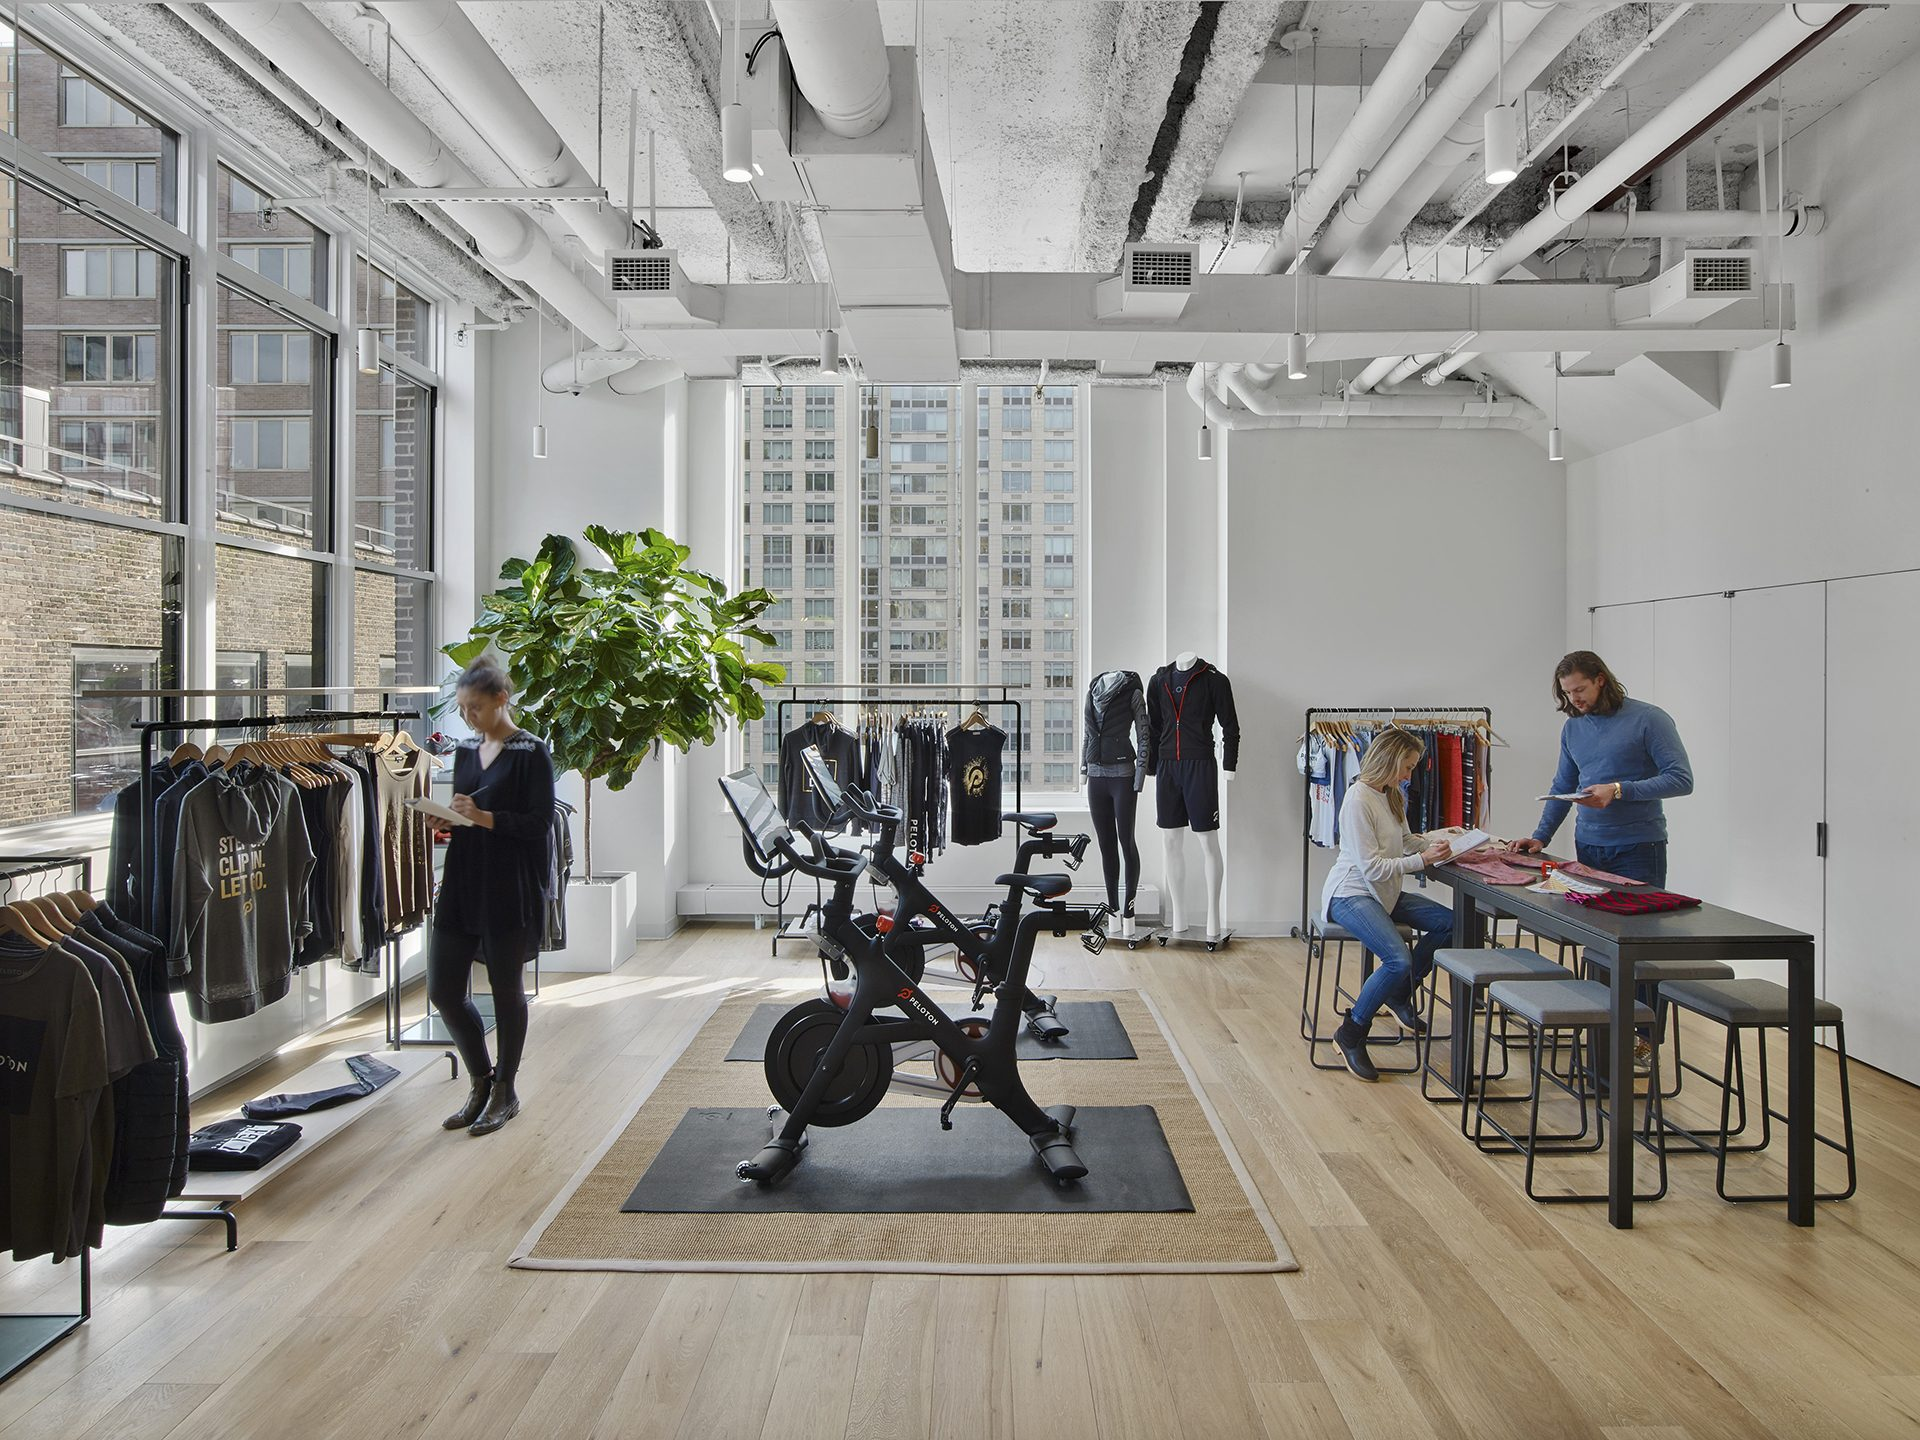 A department destination designed as a showroom for Peloton